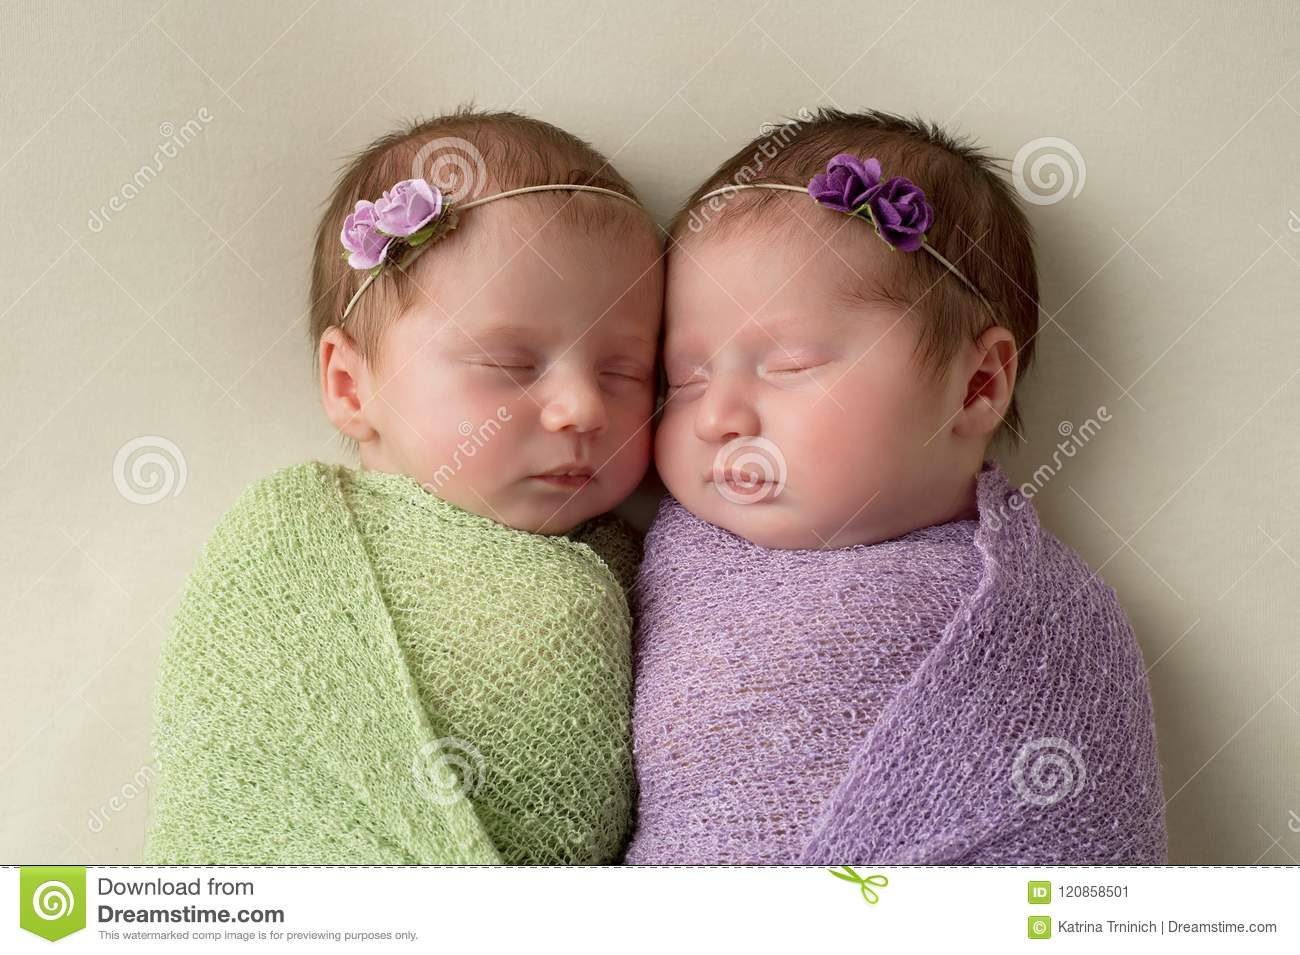 Headshot of fraternal twin newborn baby girls swaddled in light green and lavender stretch wrap material